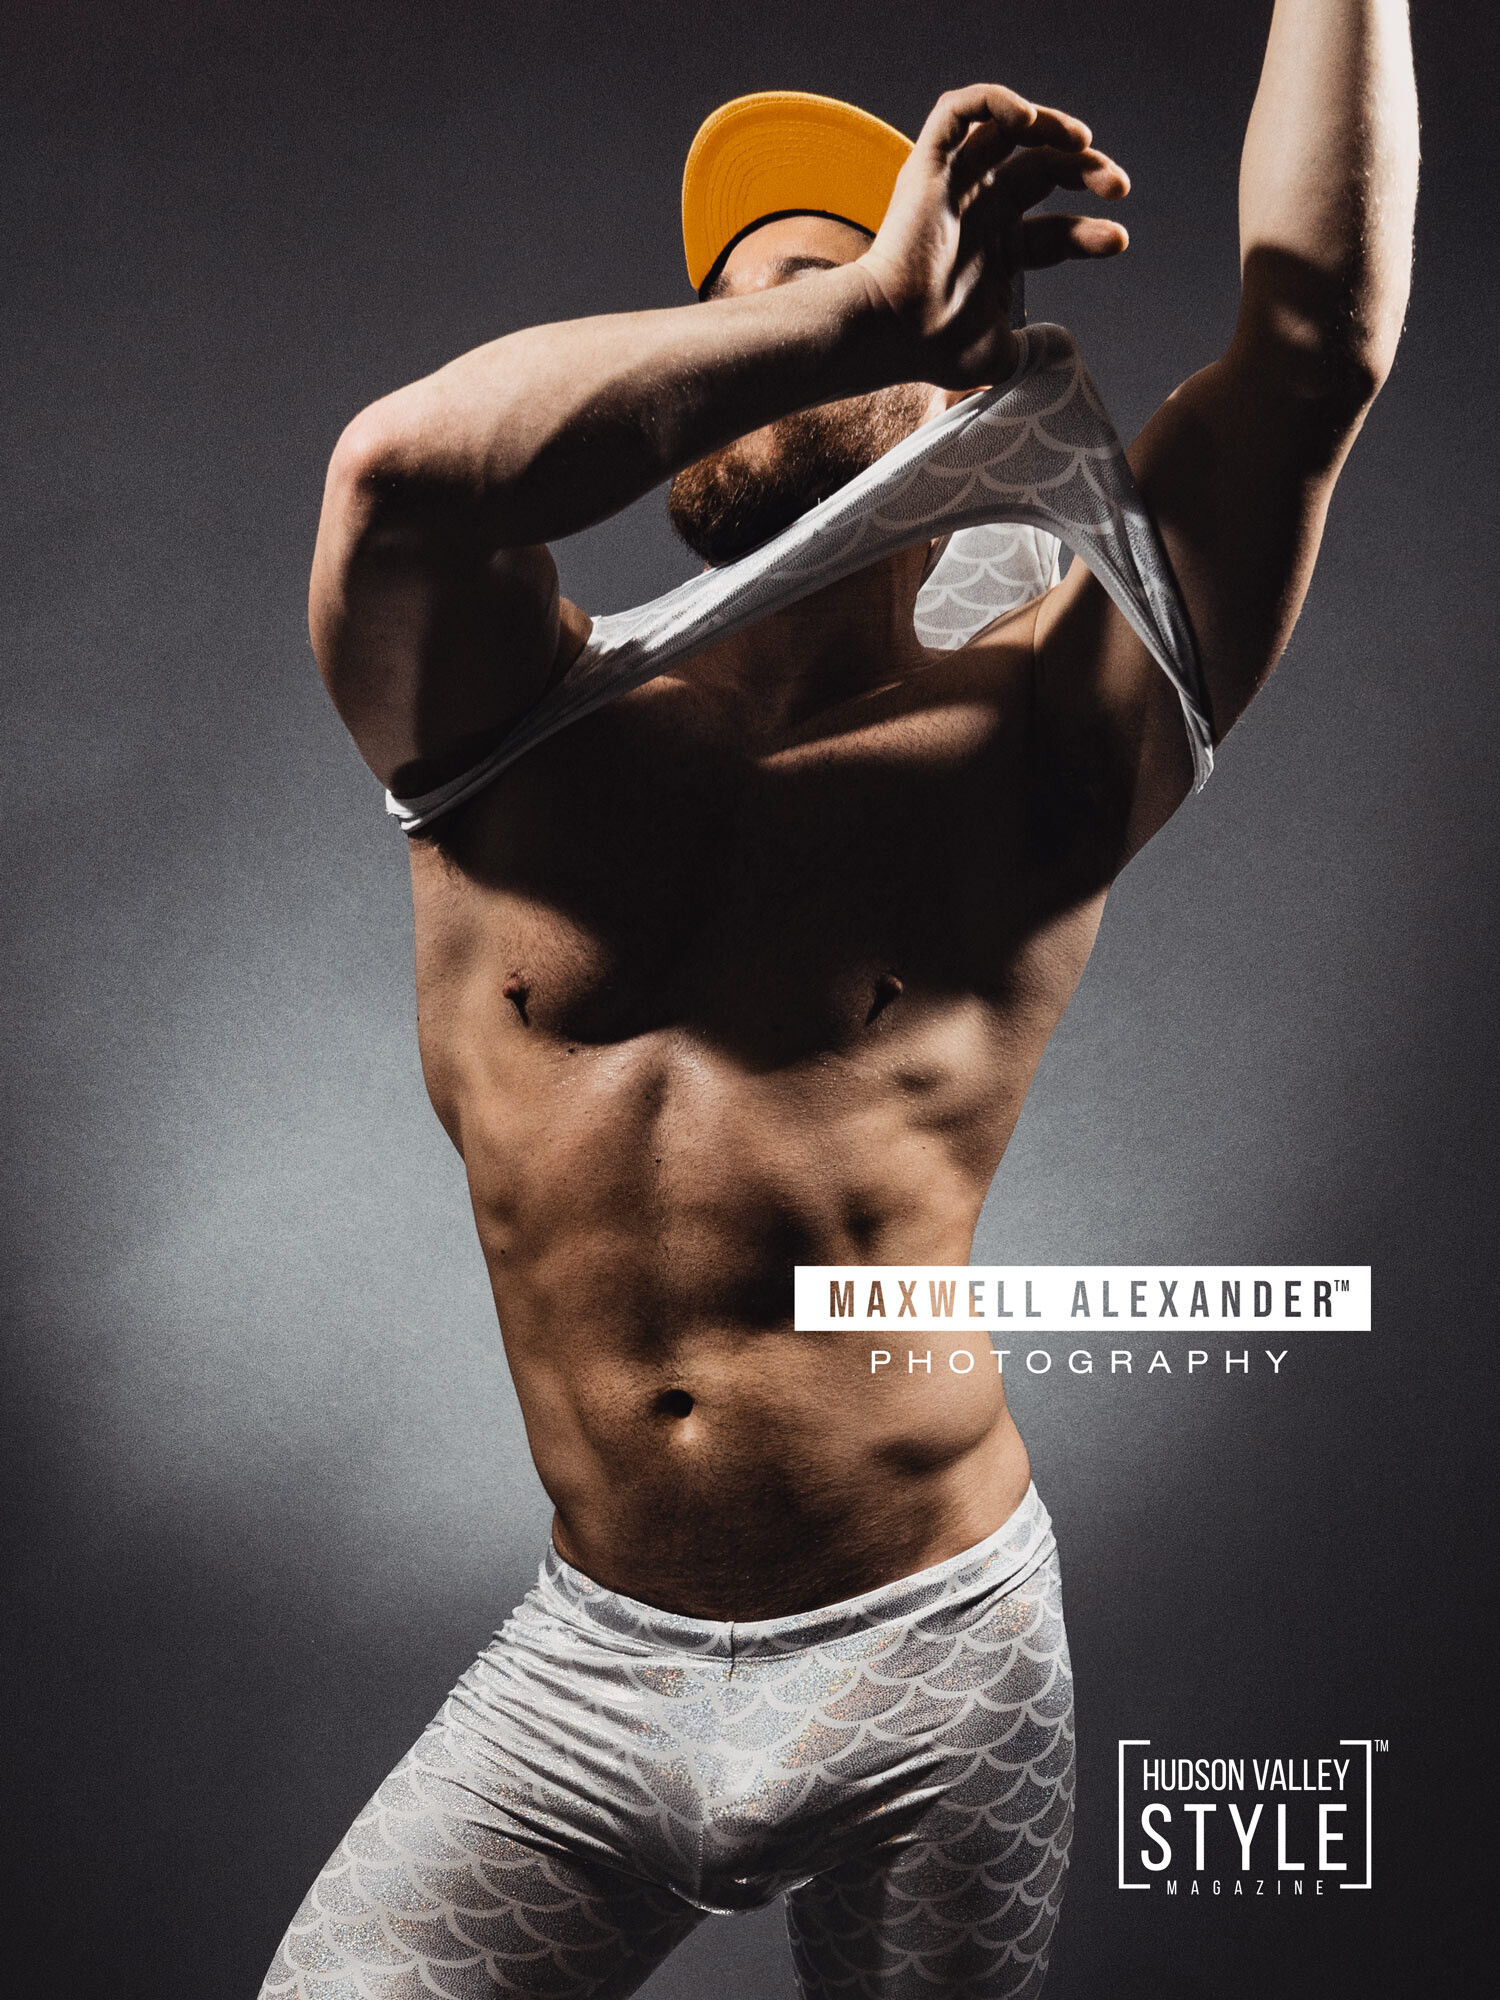 Fitness and Bodybuilding Lifestyle Photography by Maxwell Alexander, New York, NYC, Hudson Valley